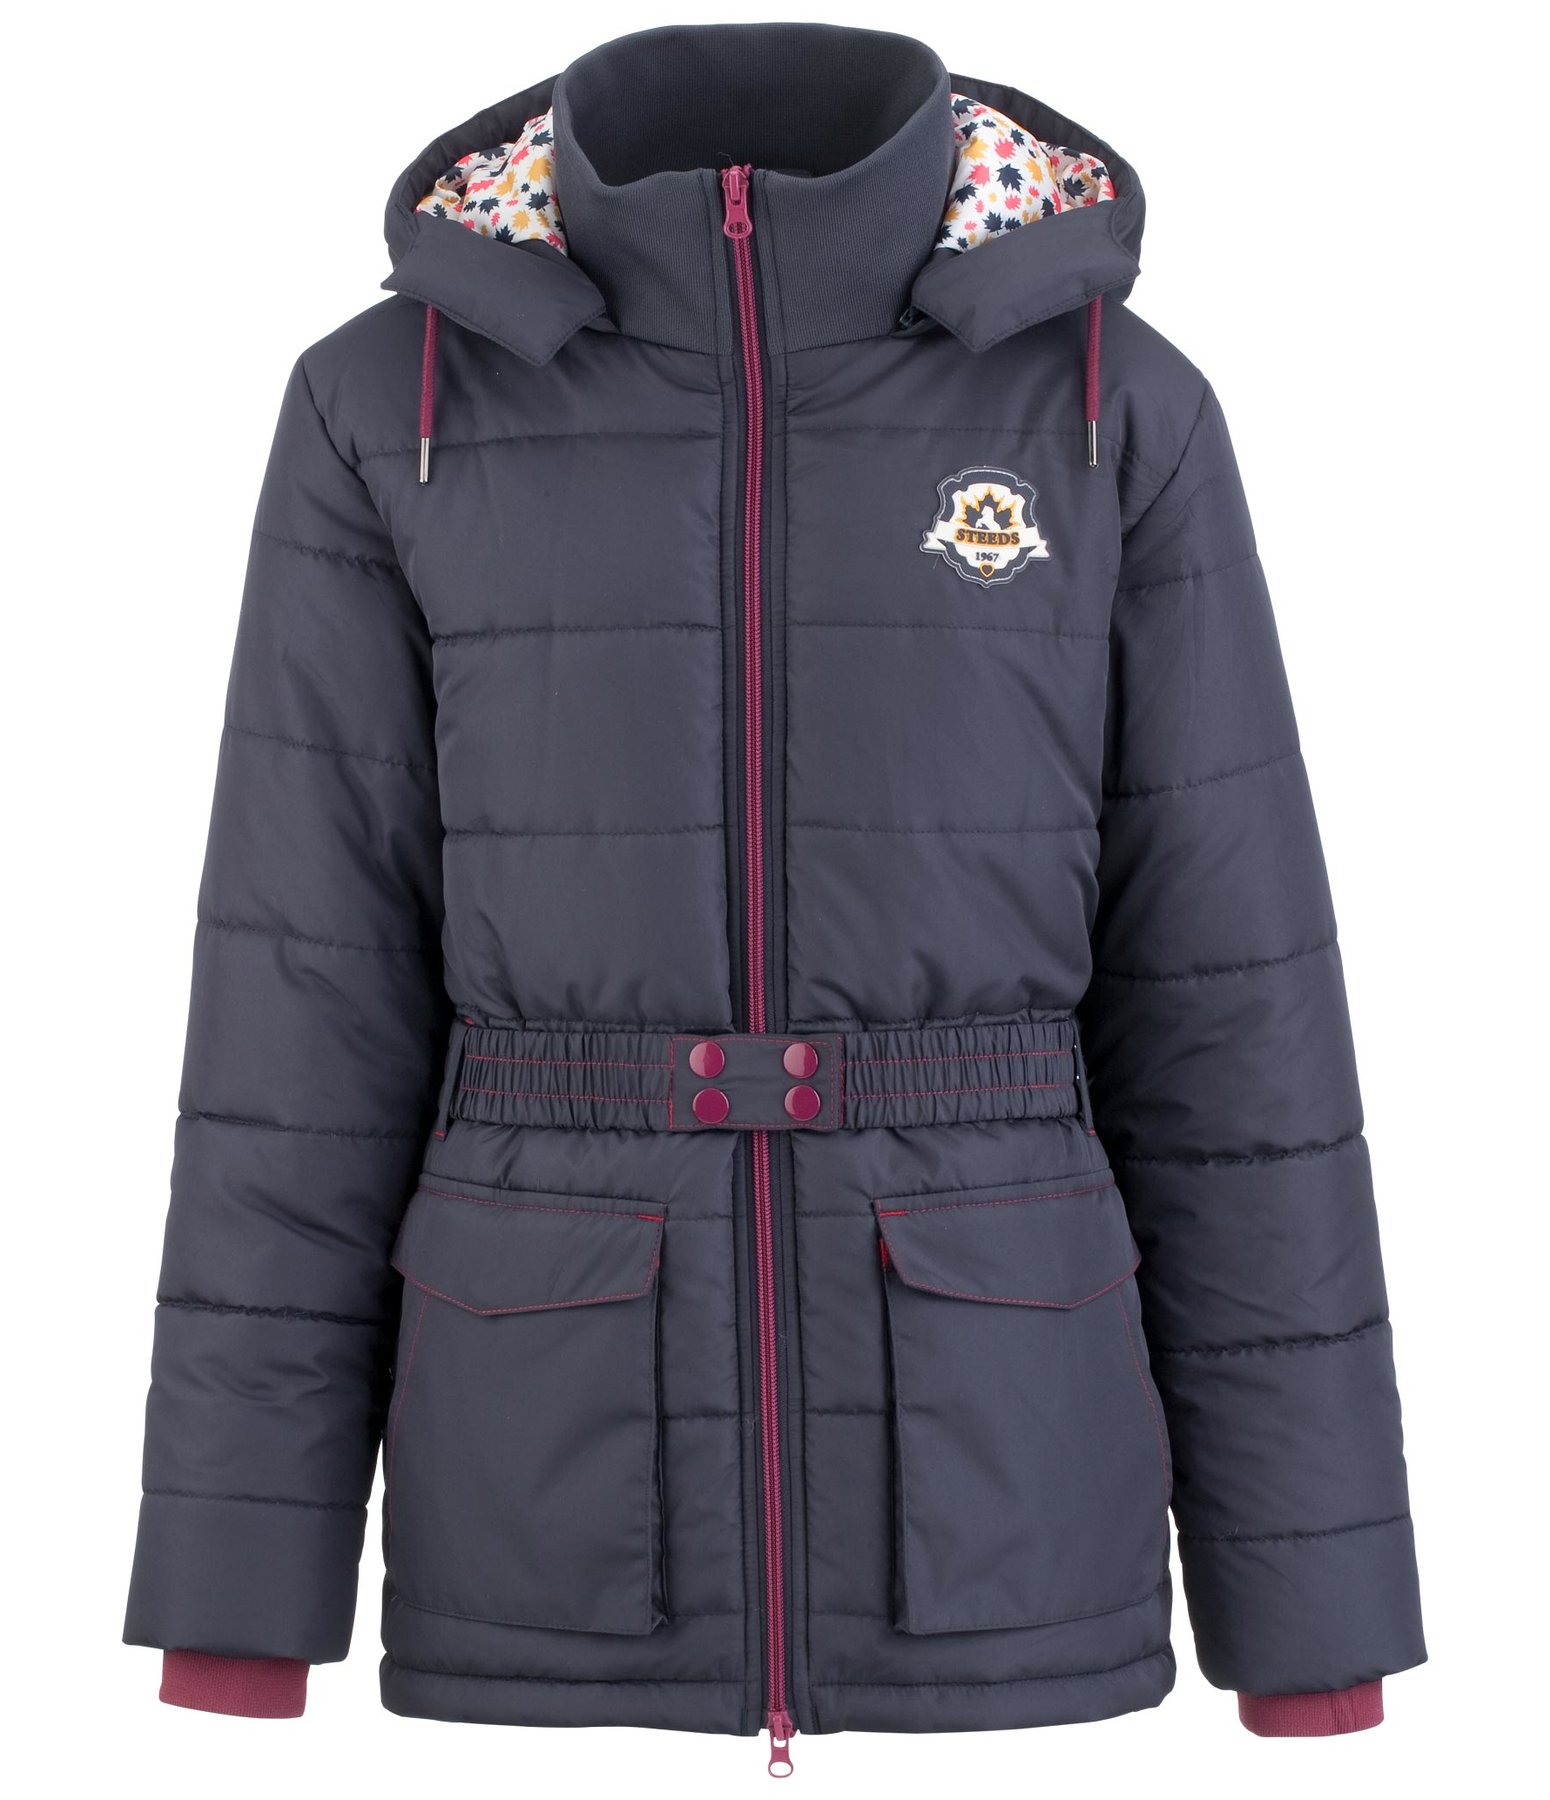 Children's Winter Riding Blouson Aline